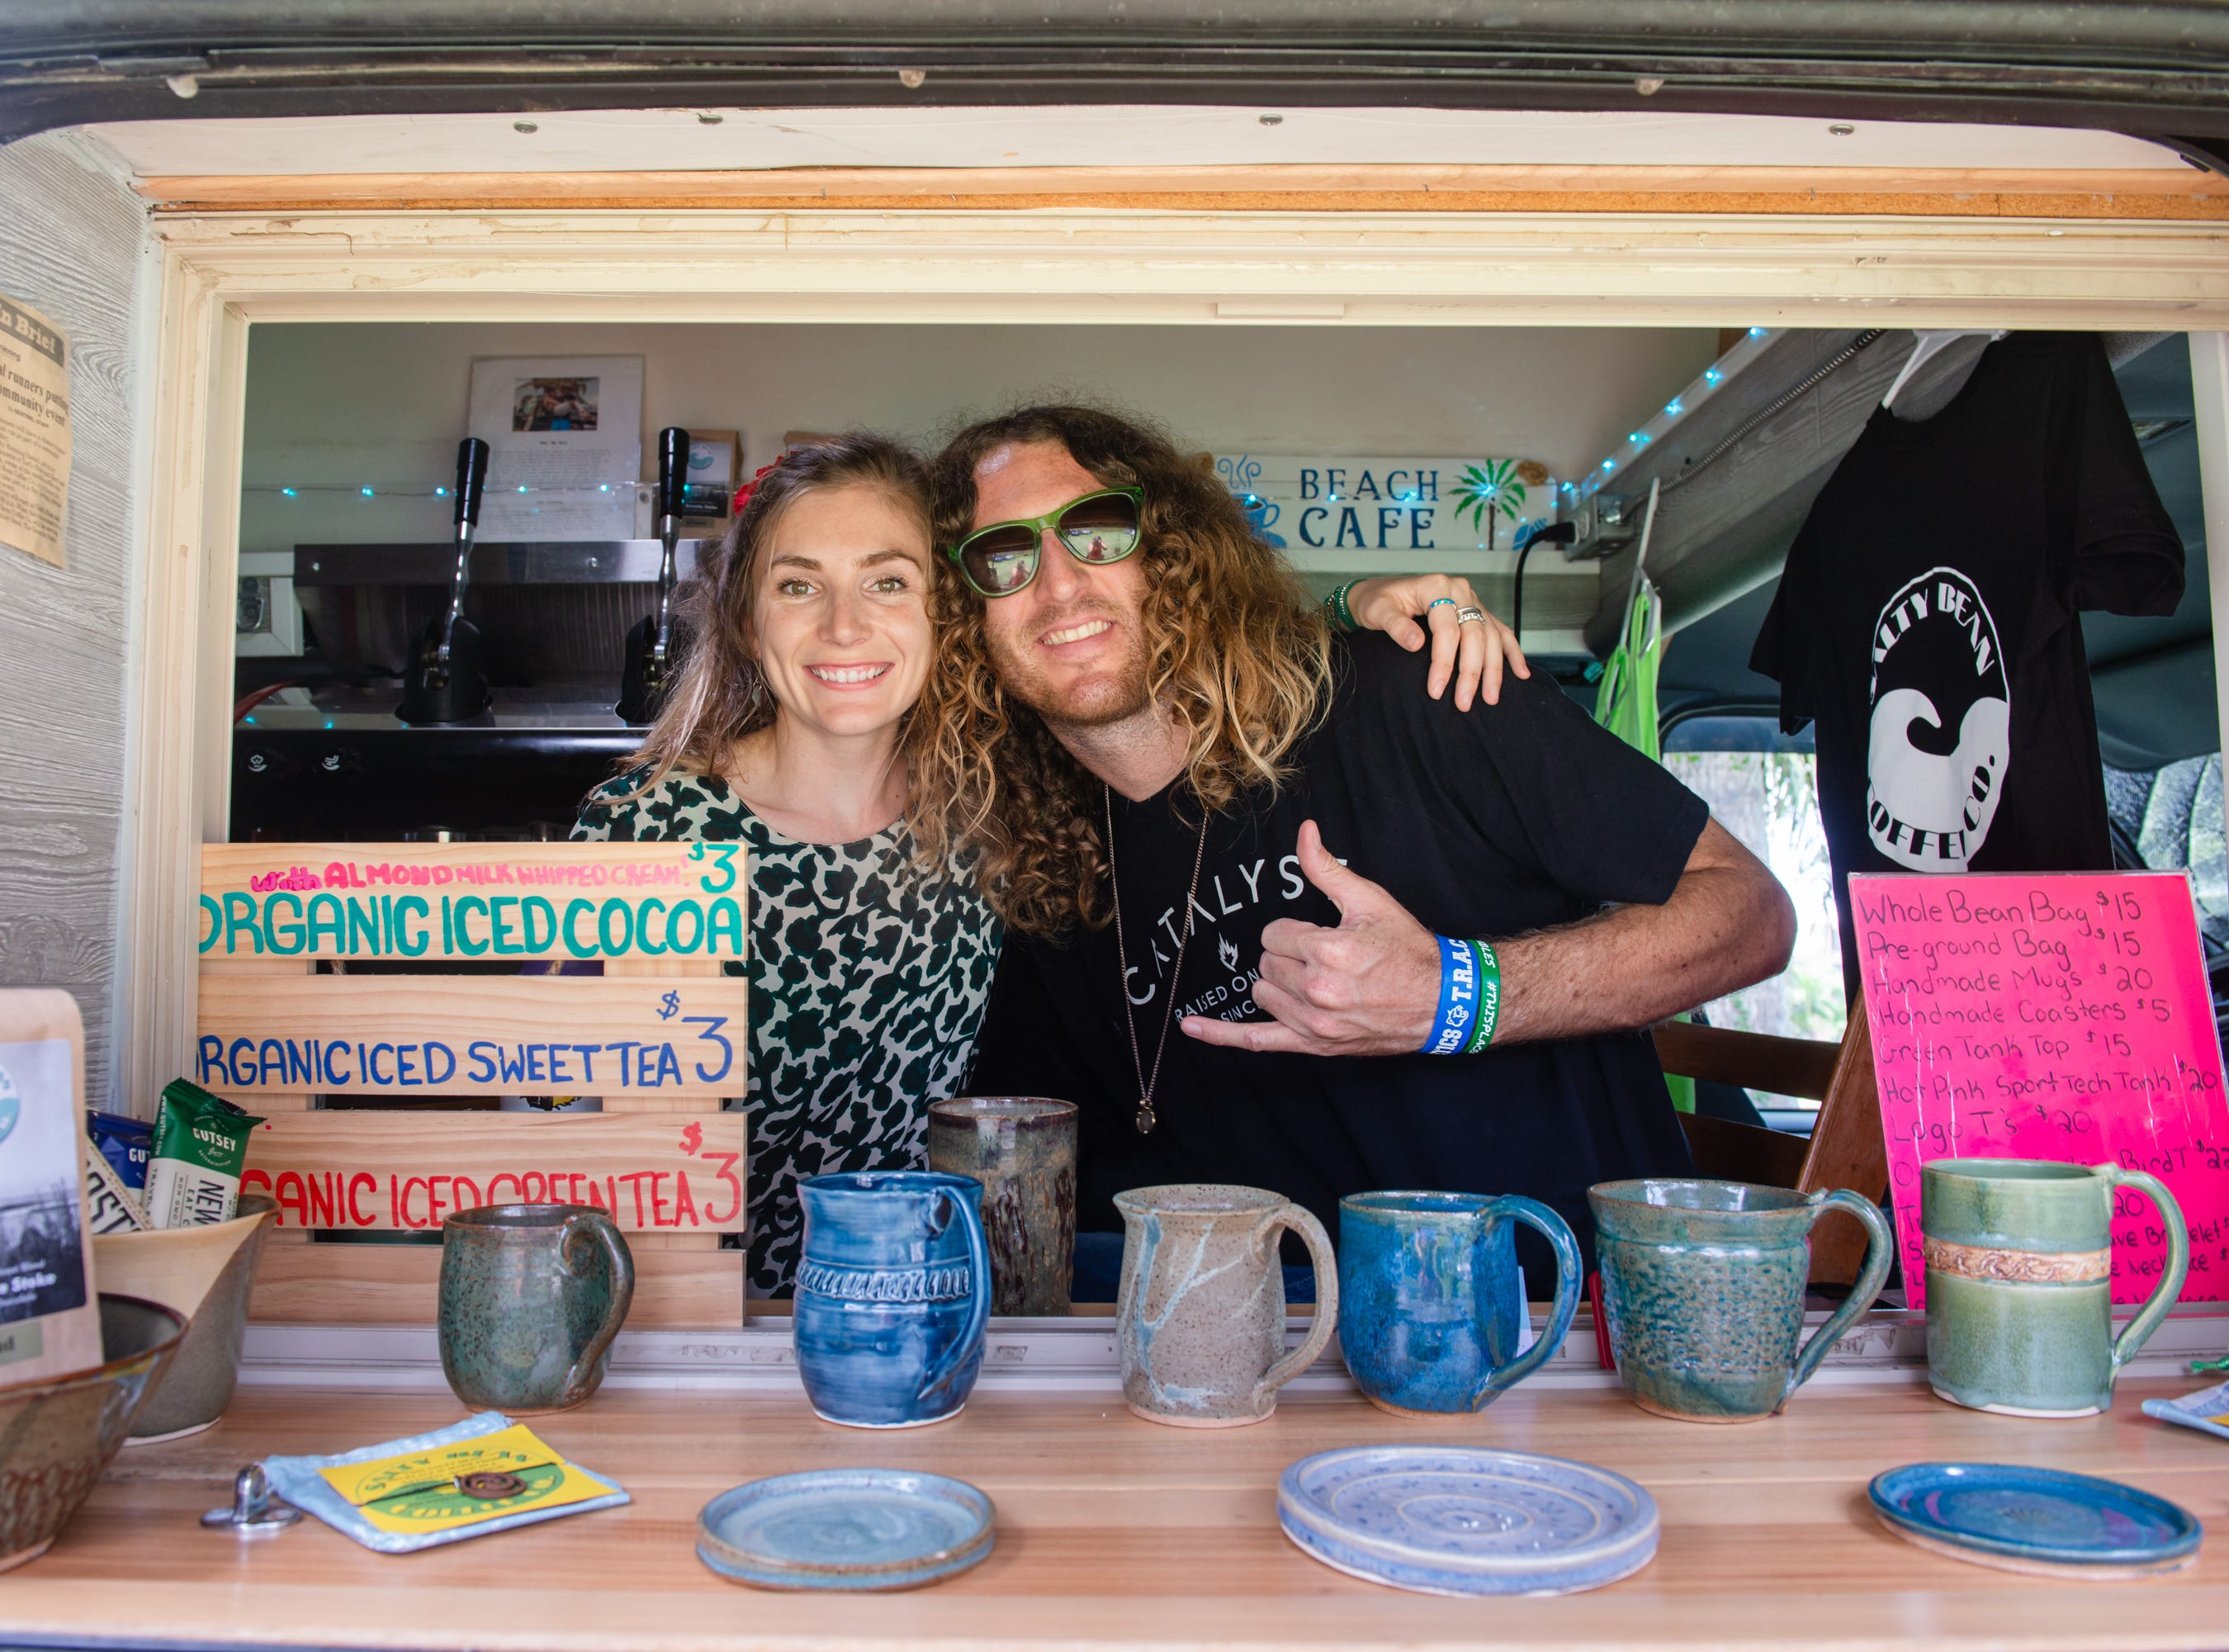 Paige Mills and Noah Martin, owners of the Salty Bean Coffee Co., at the Christmas in July event, which raised money to restore the Green Gables Victorian house in Melbourne.